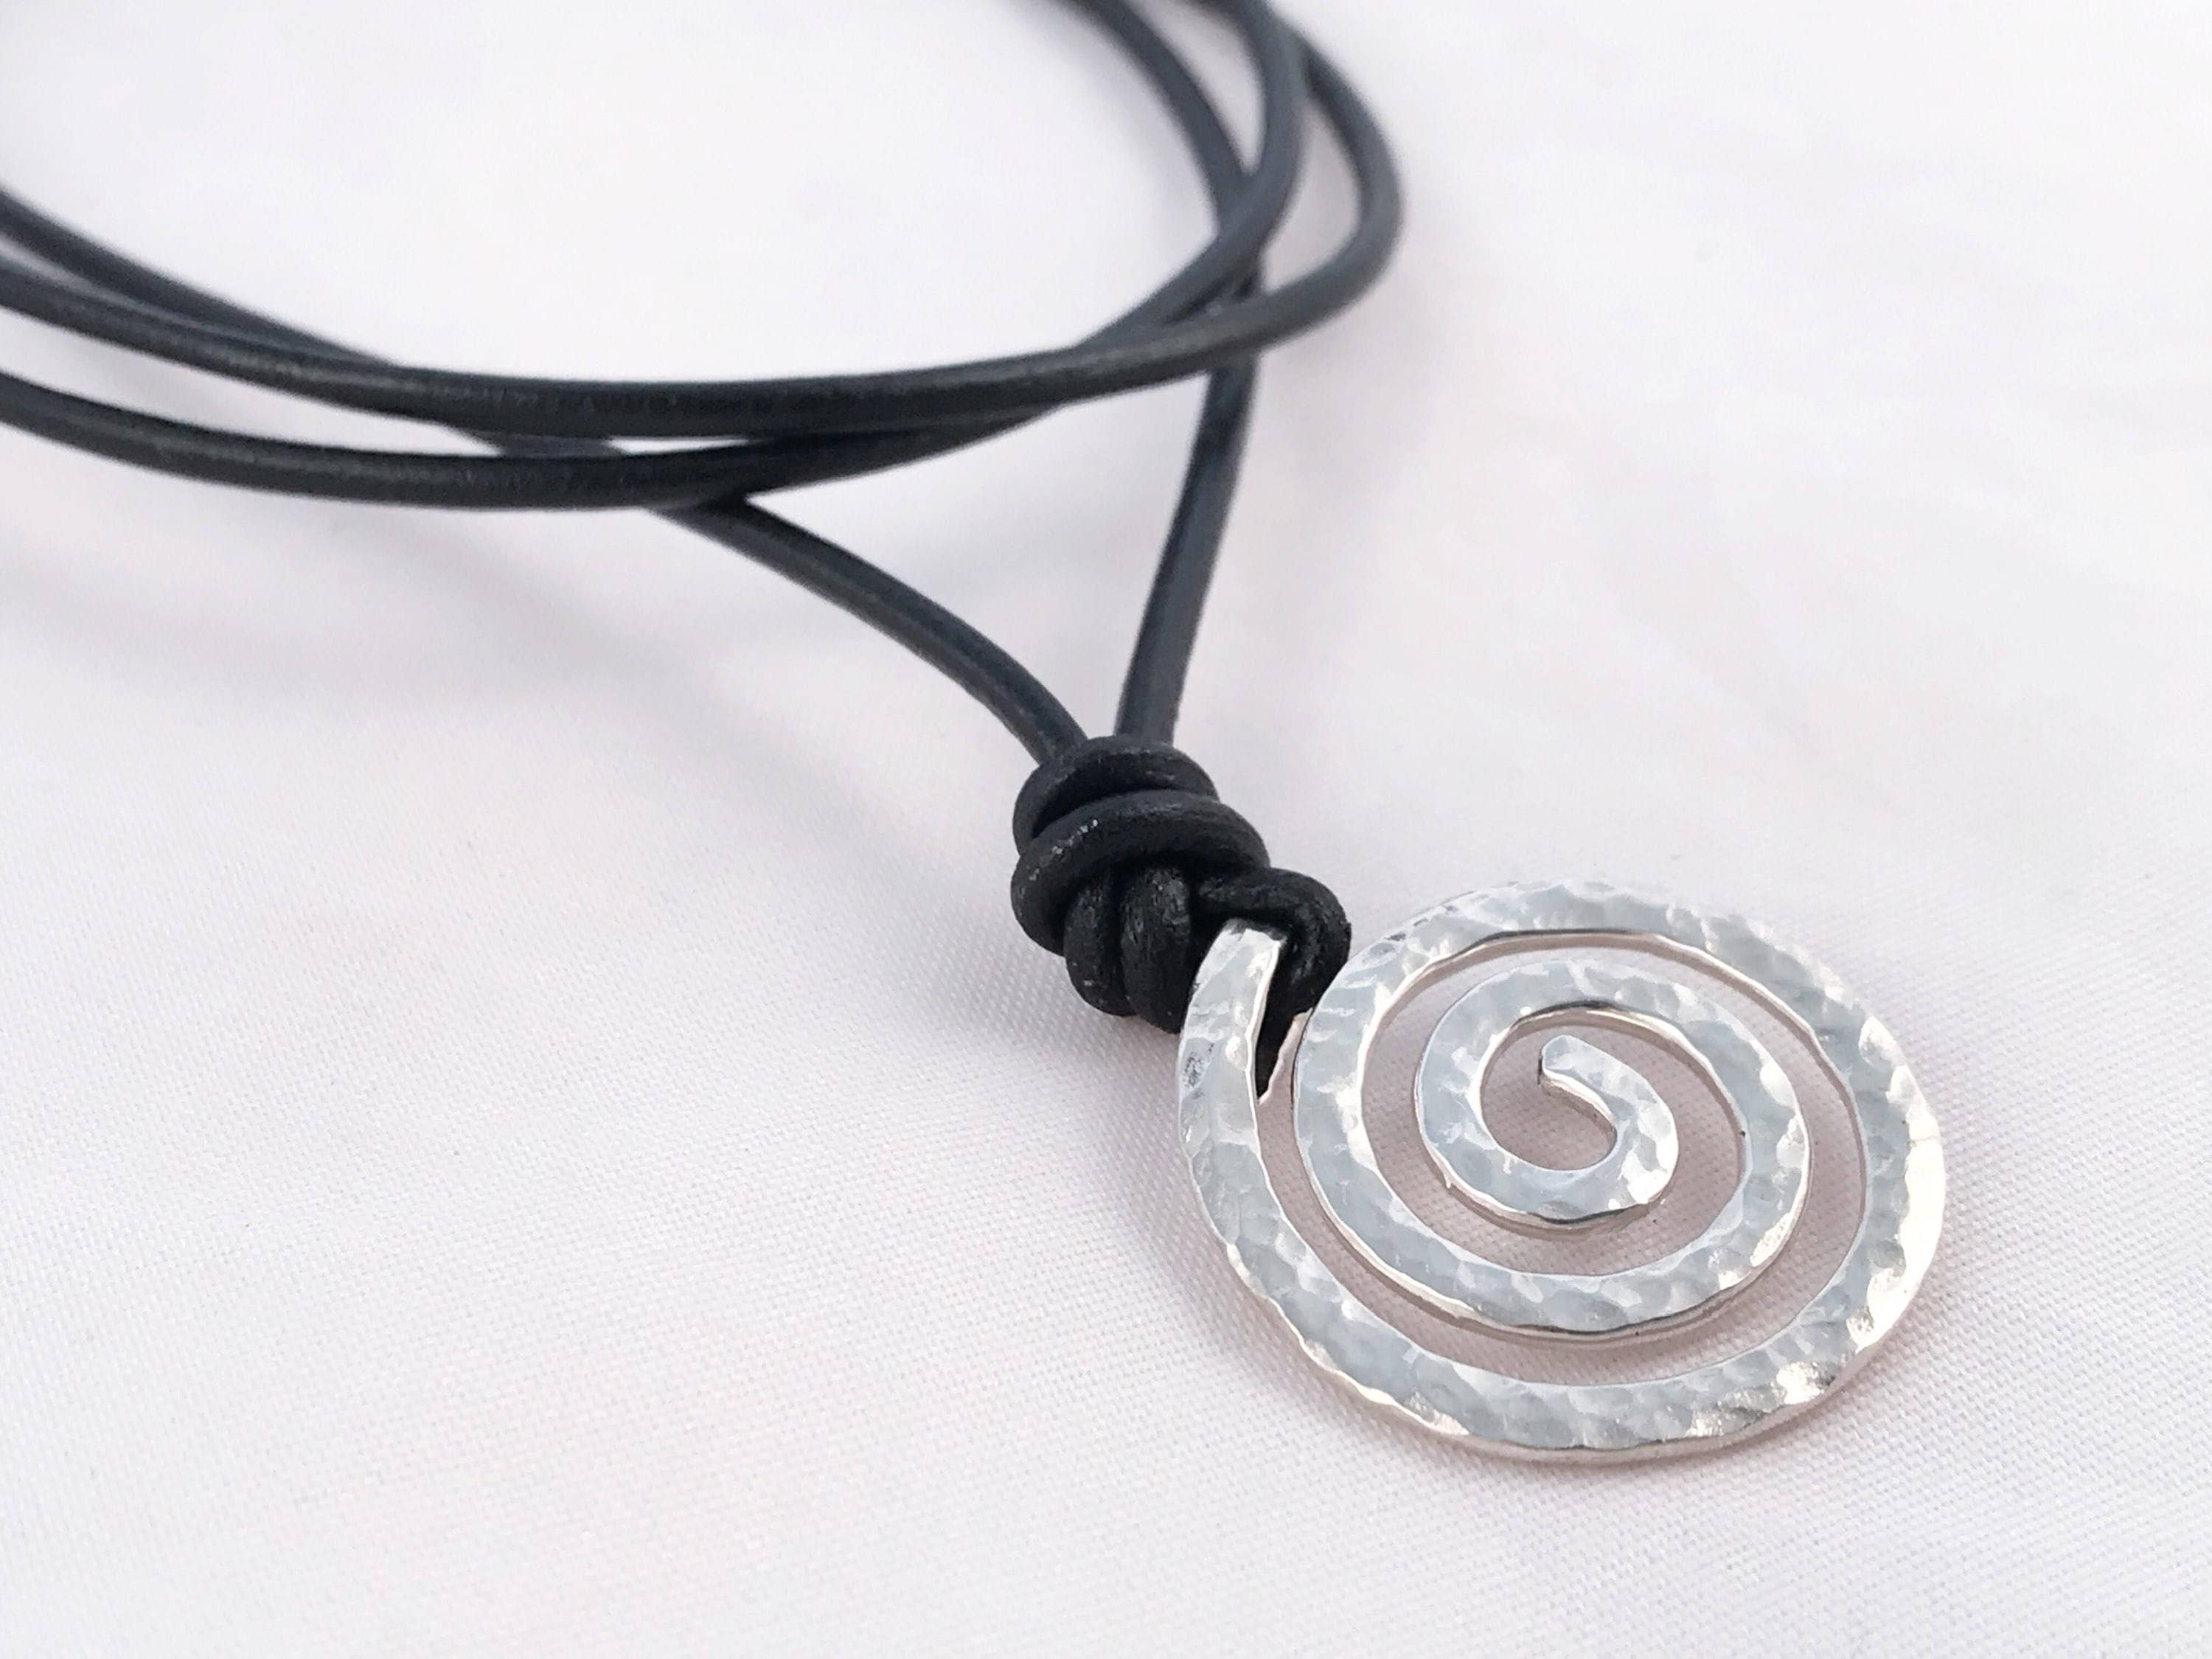 com maori necklace spiral amazon leather tranquility peace on koru pewter and dp pendant